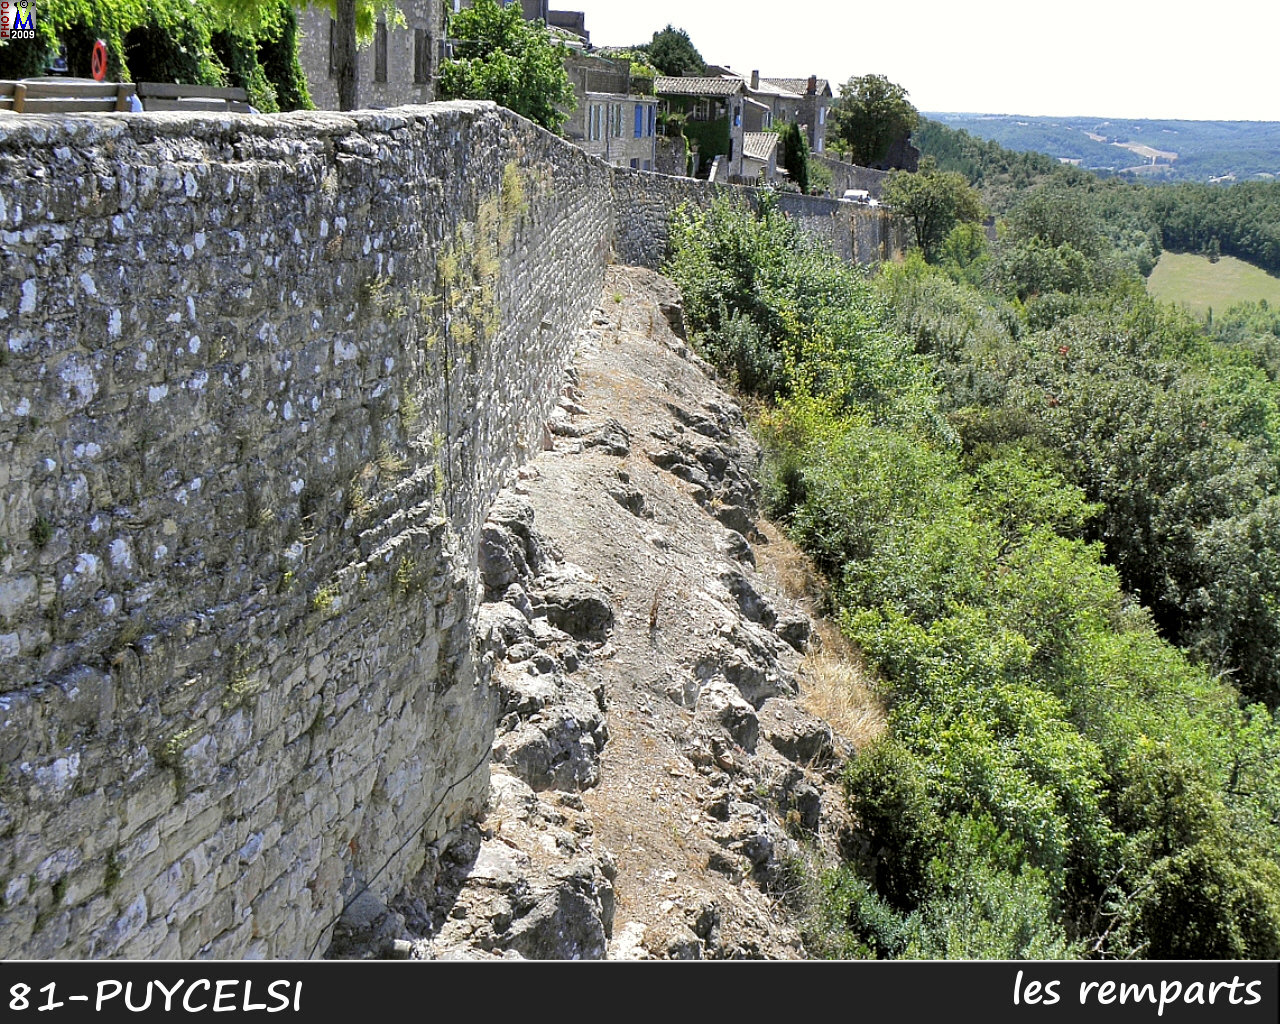 81PUYCELSI_remparts_106.jpg